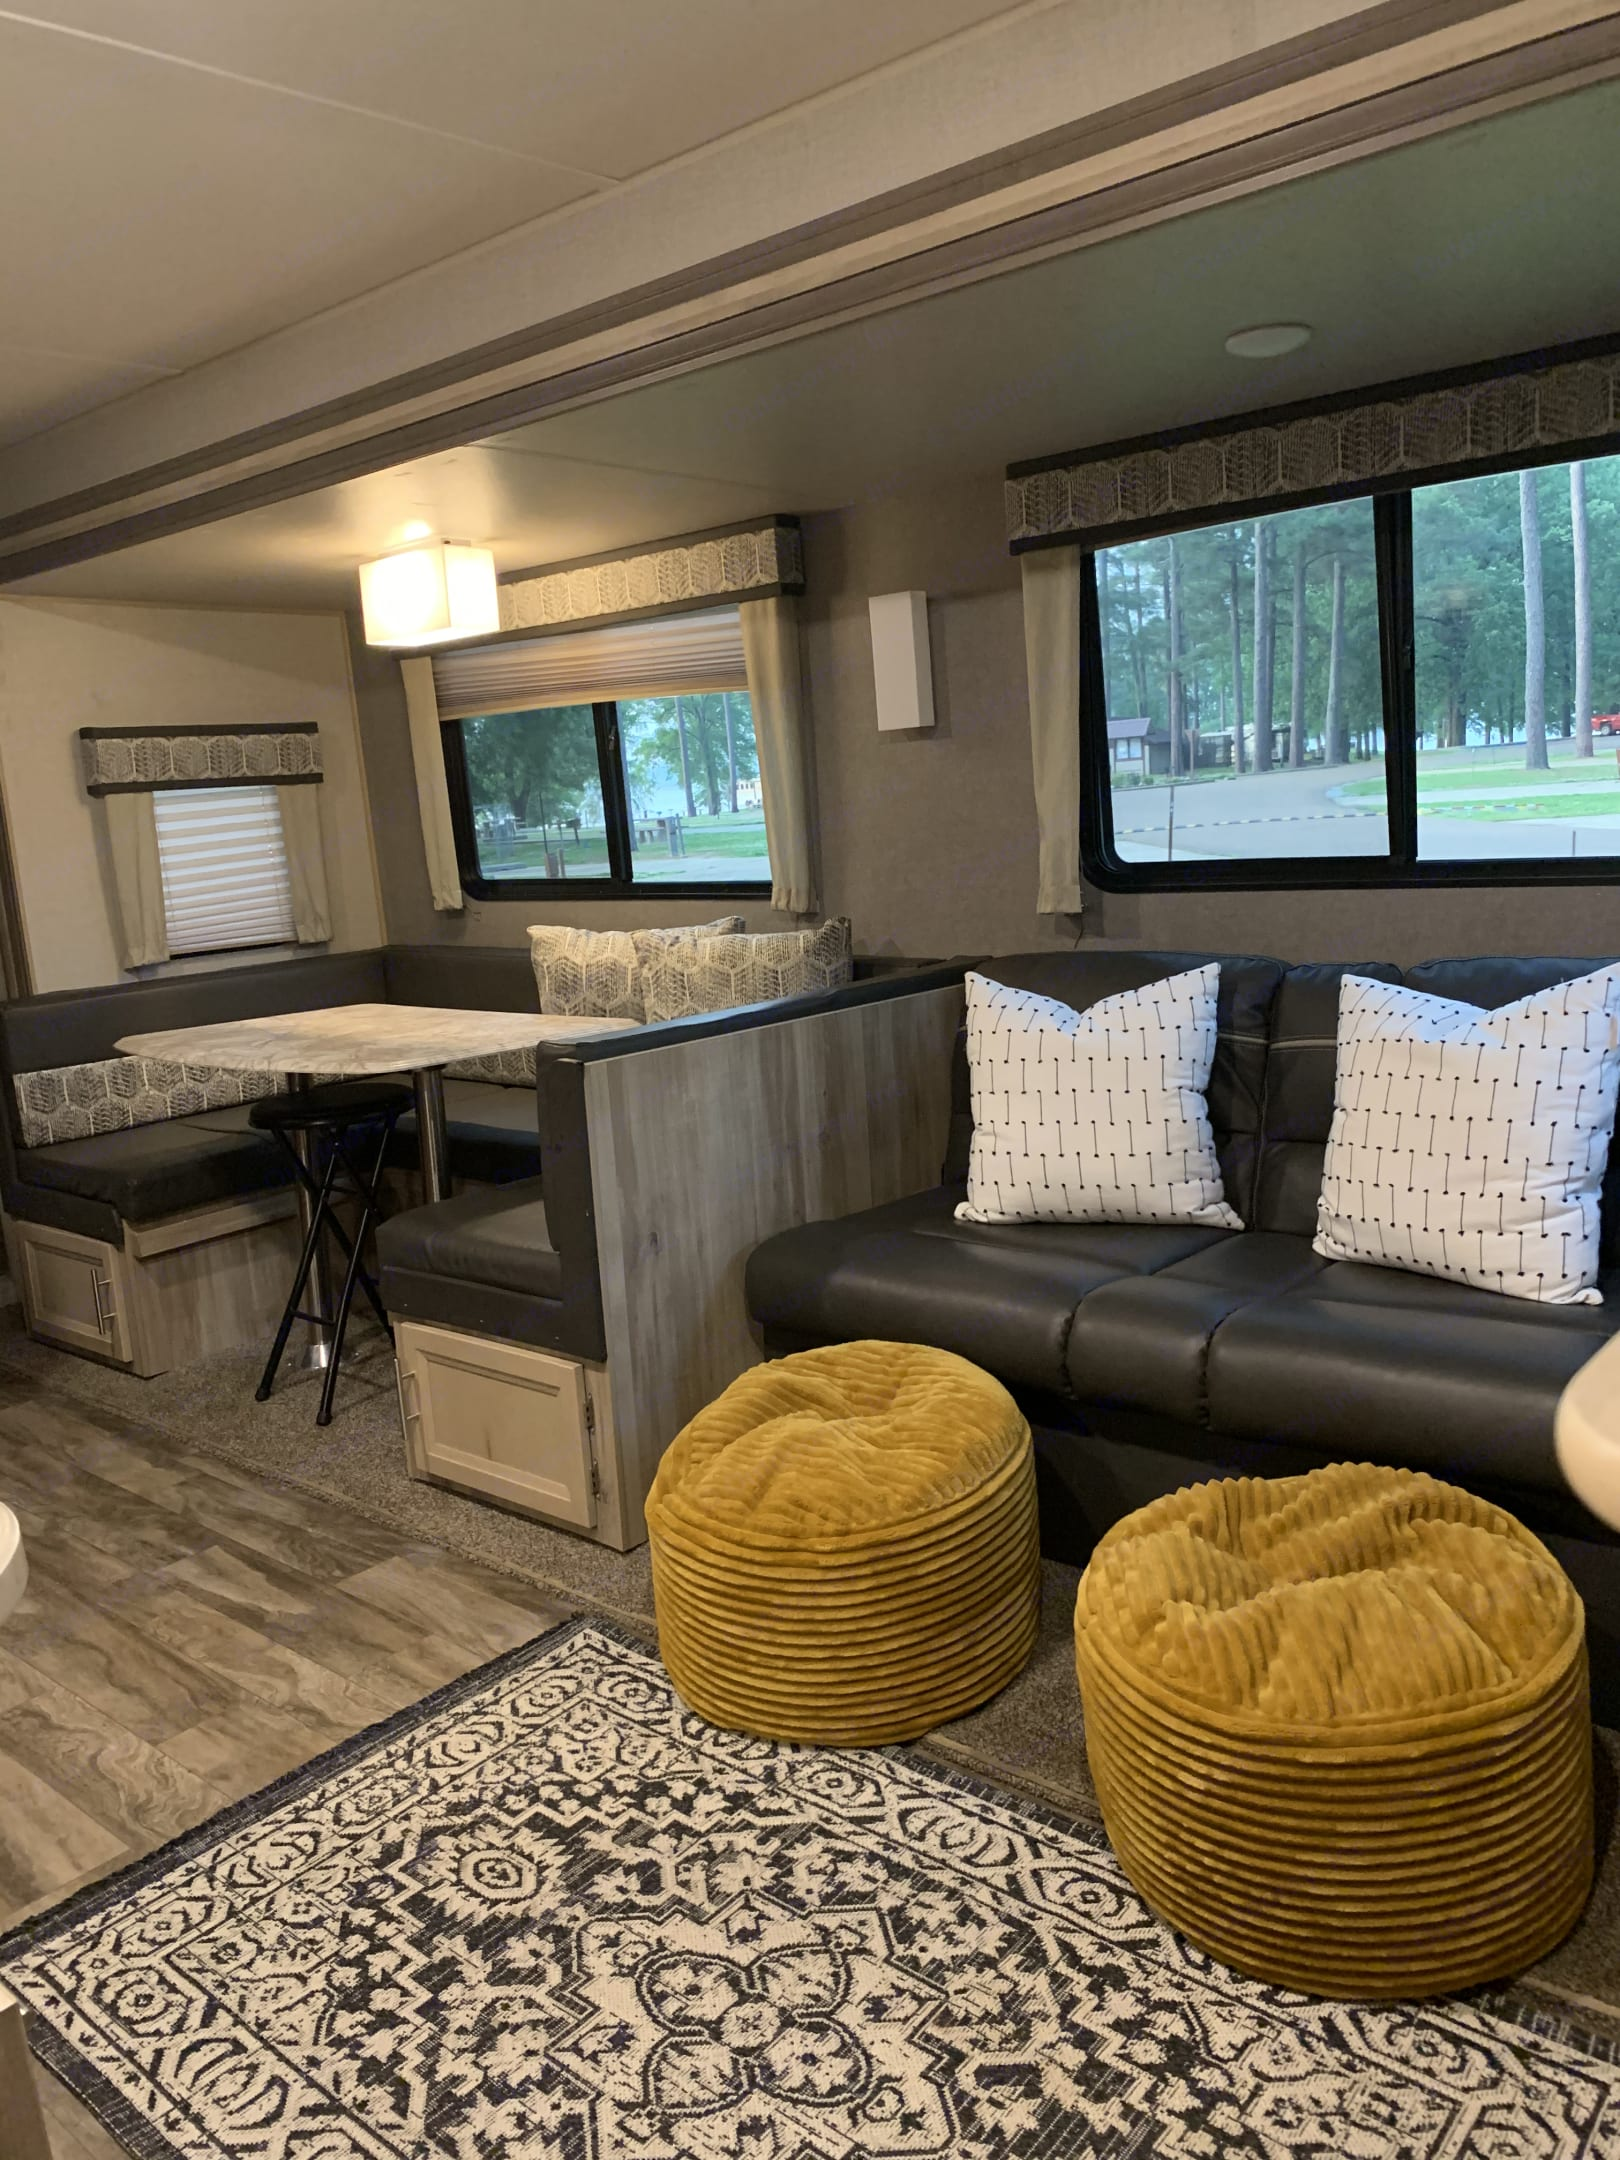 Couch makes into full size bed. . Coachmen Catalina 2021